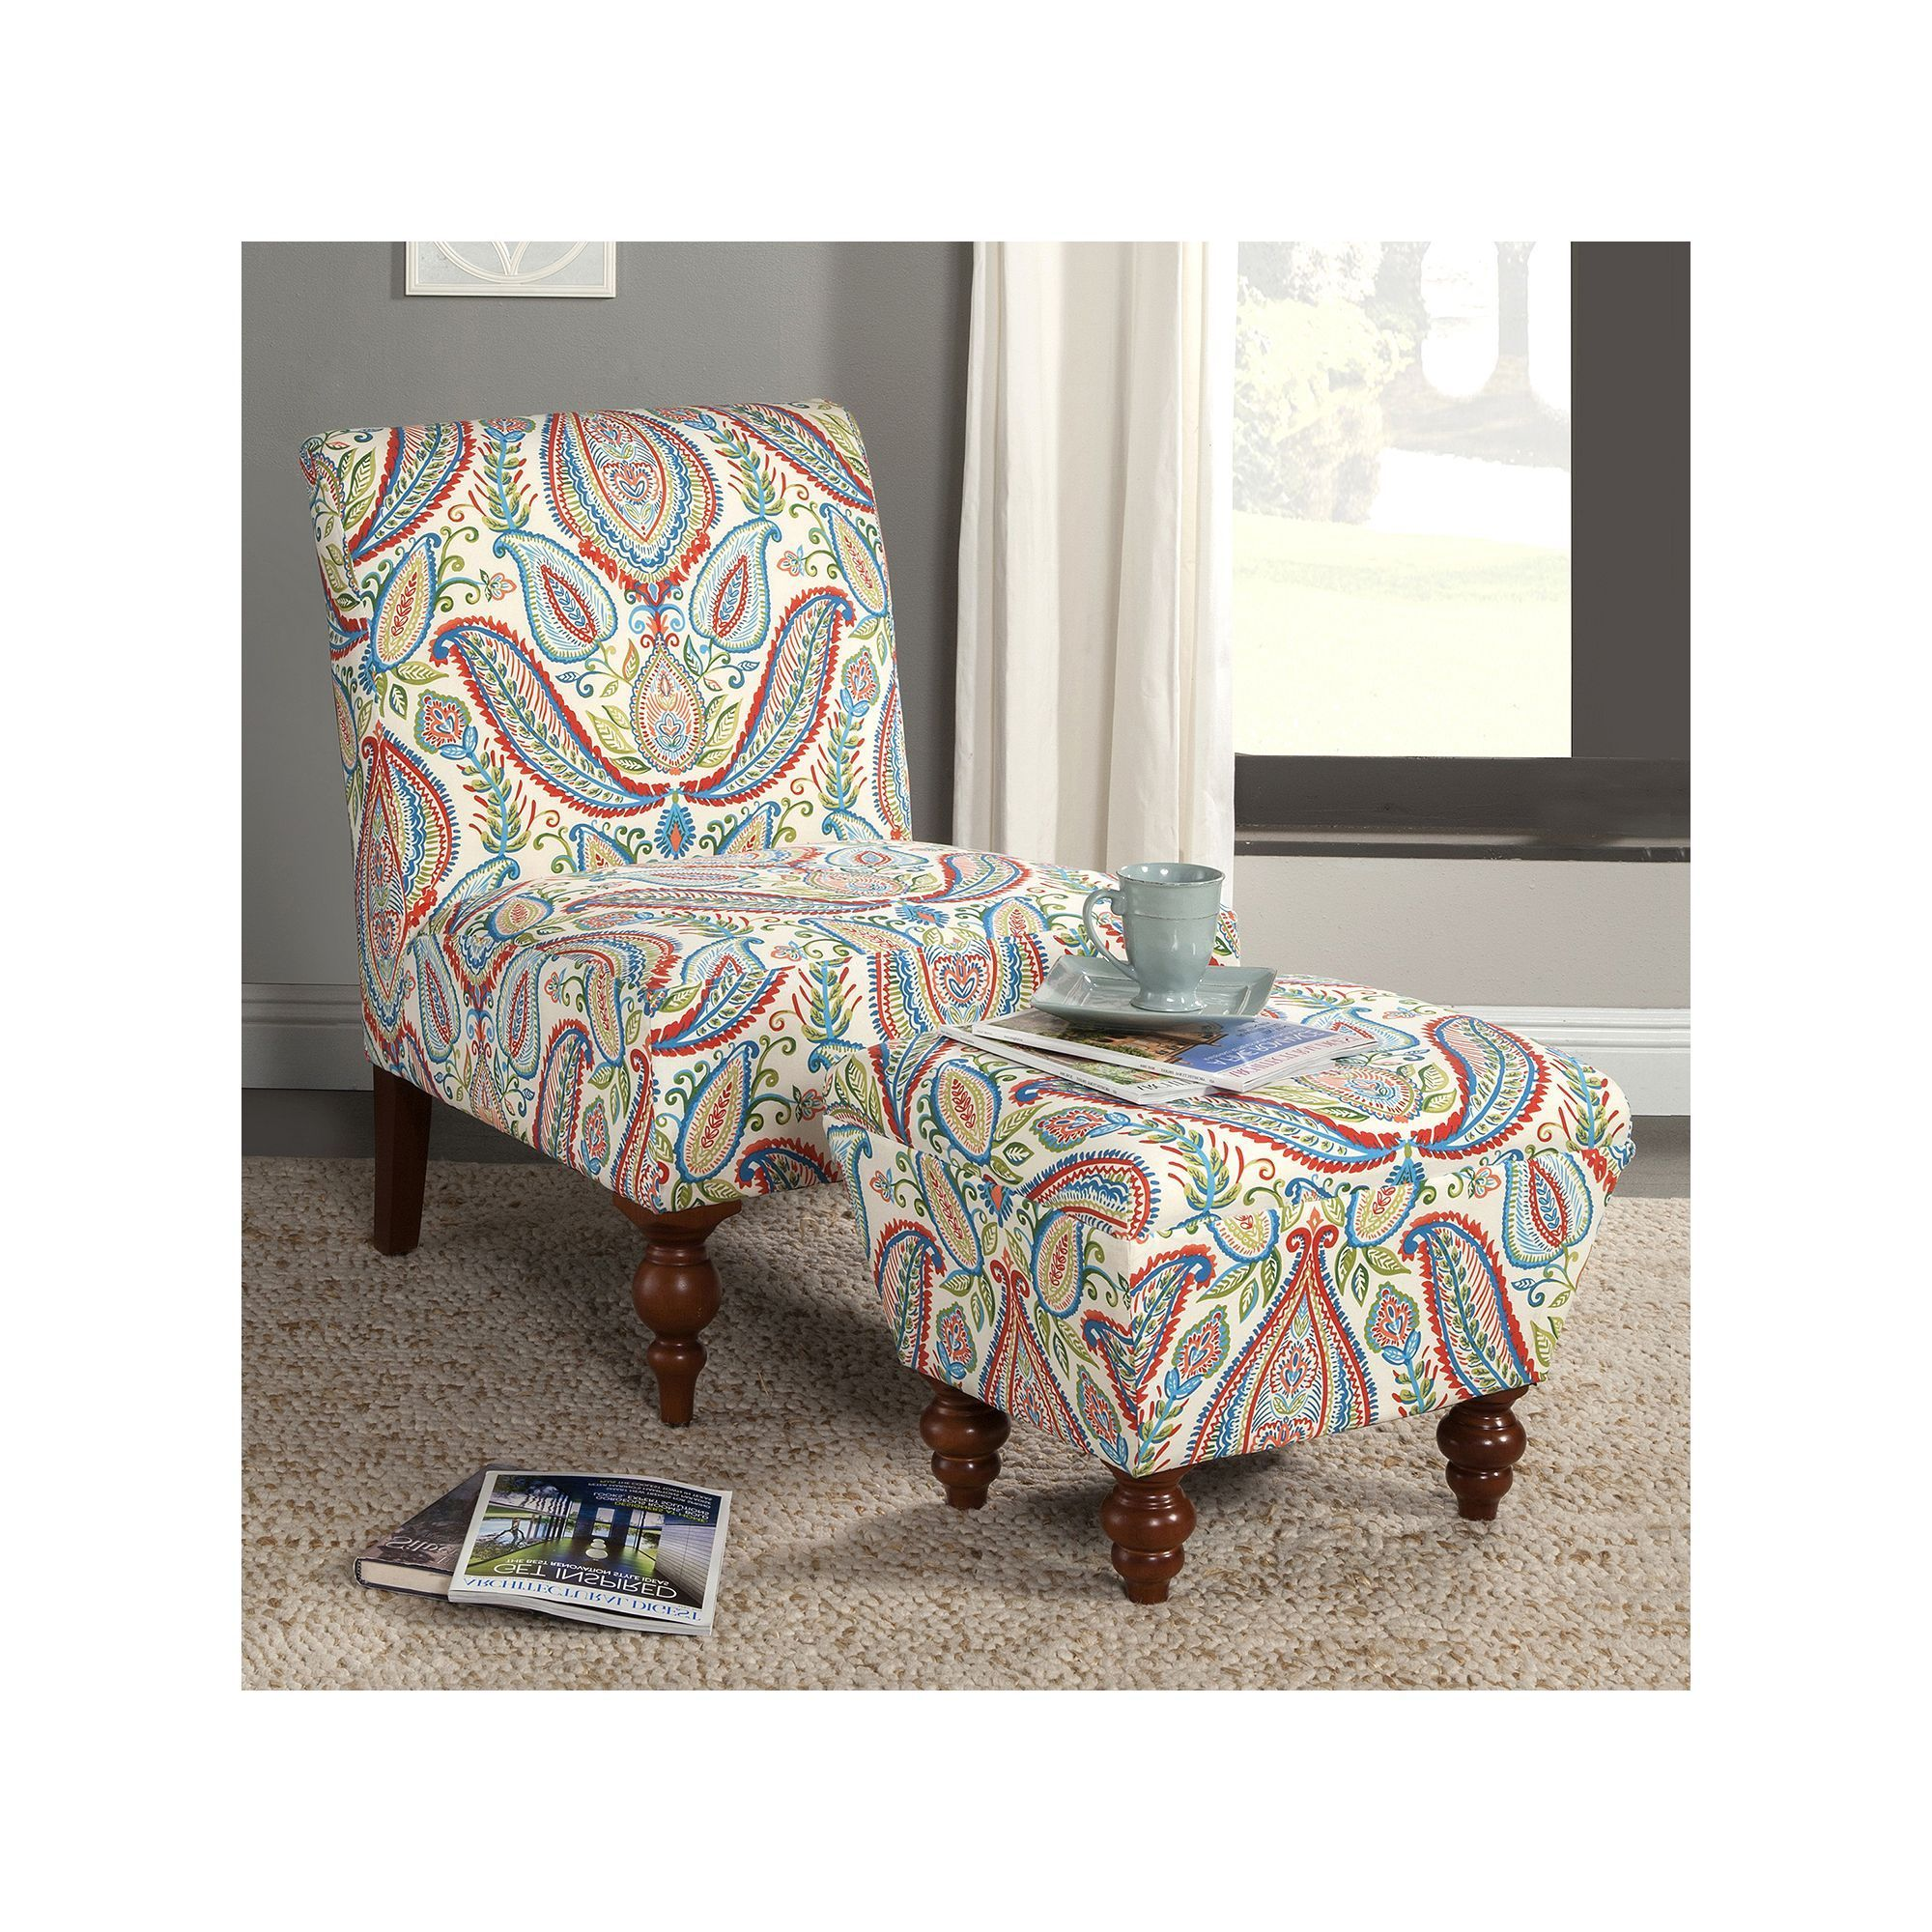 Remarkable Homepop Paisley Accent Chair Ottoman 2 Piece Set Bralicious Painted Fabric Chair Ideas Braliciousco